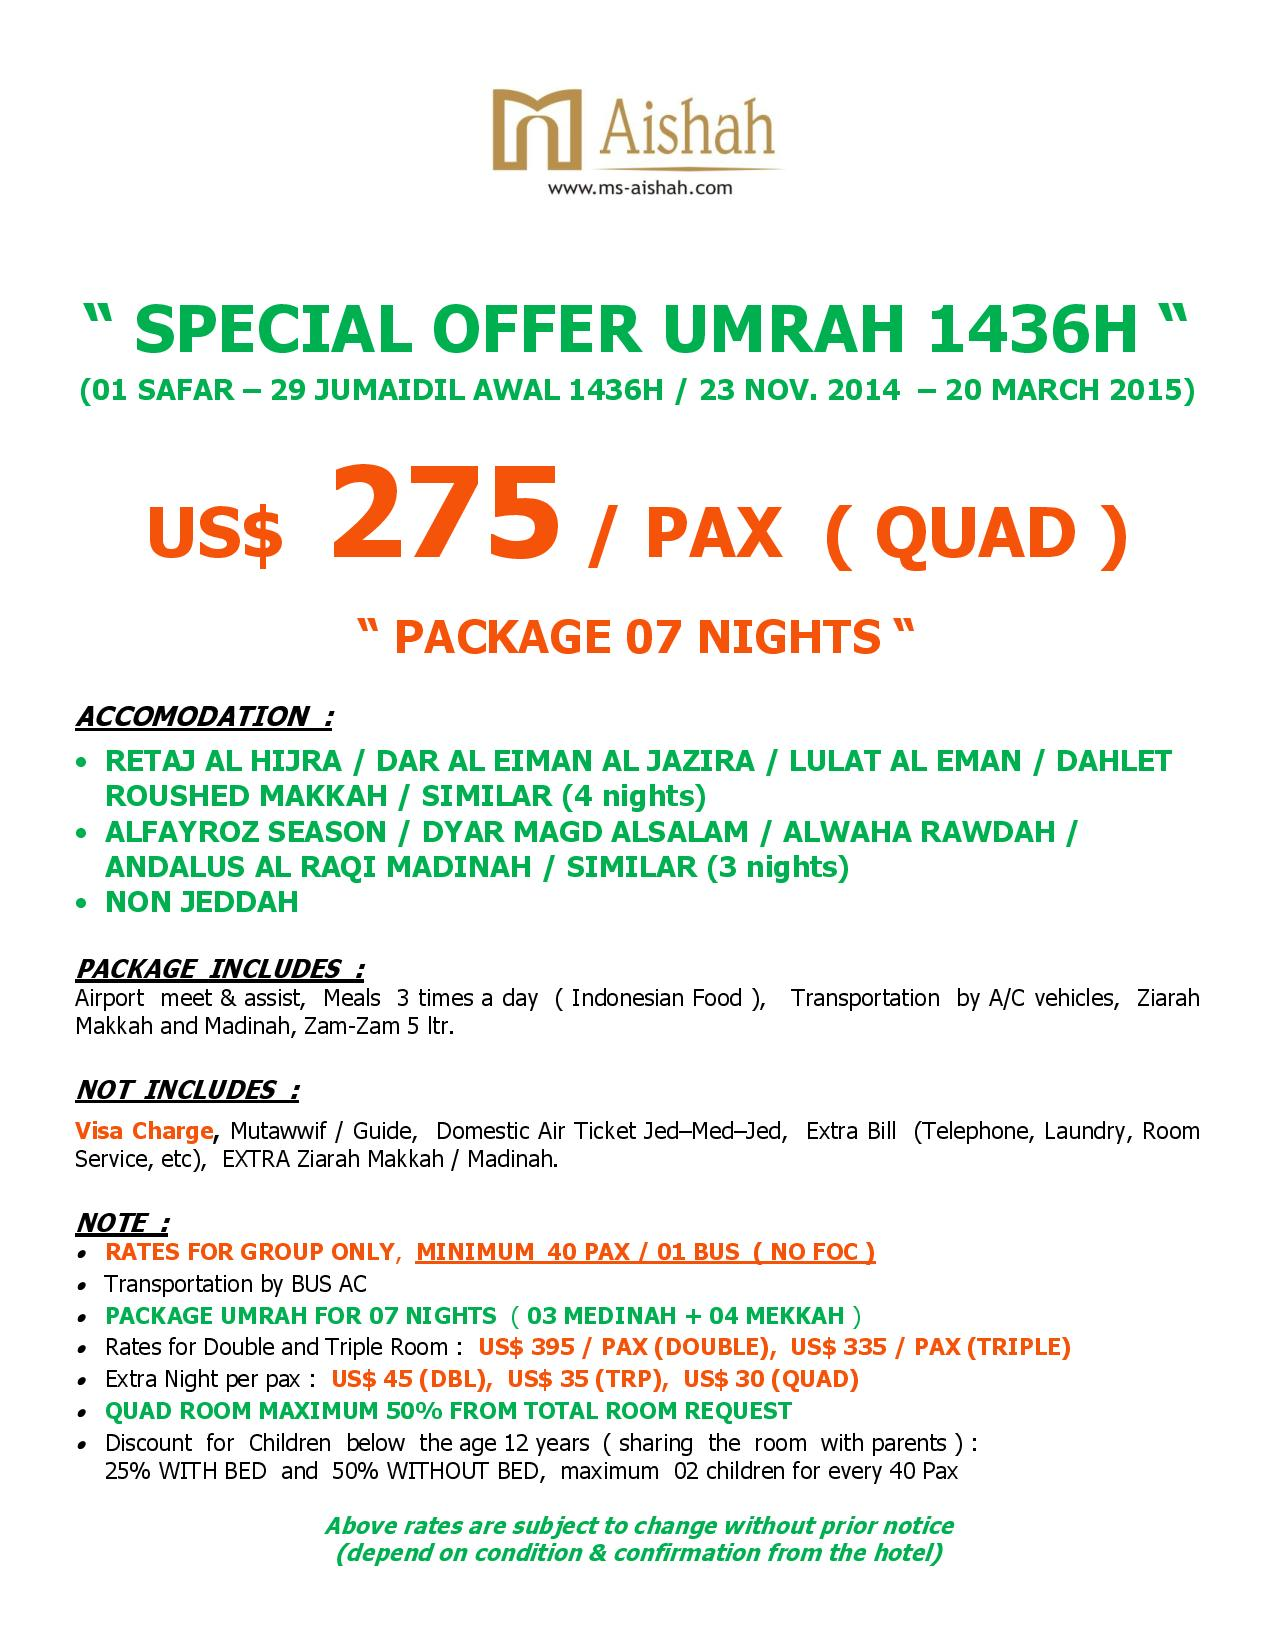 SPECIAL OFFER UMRAH 1436H SEASON 1-page-001